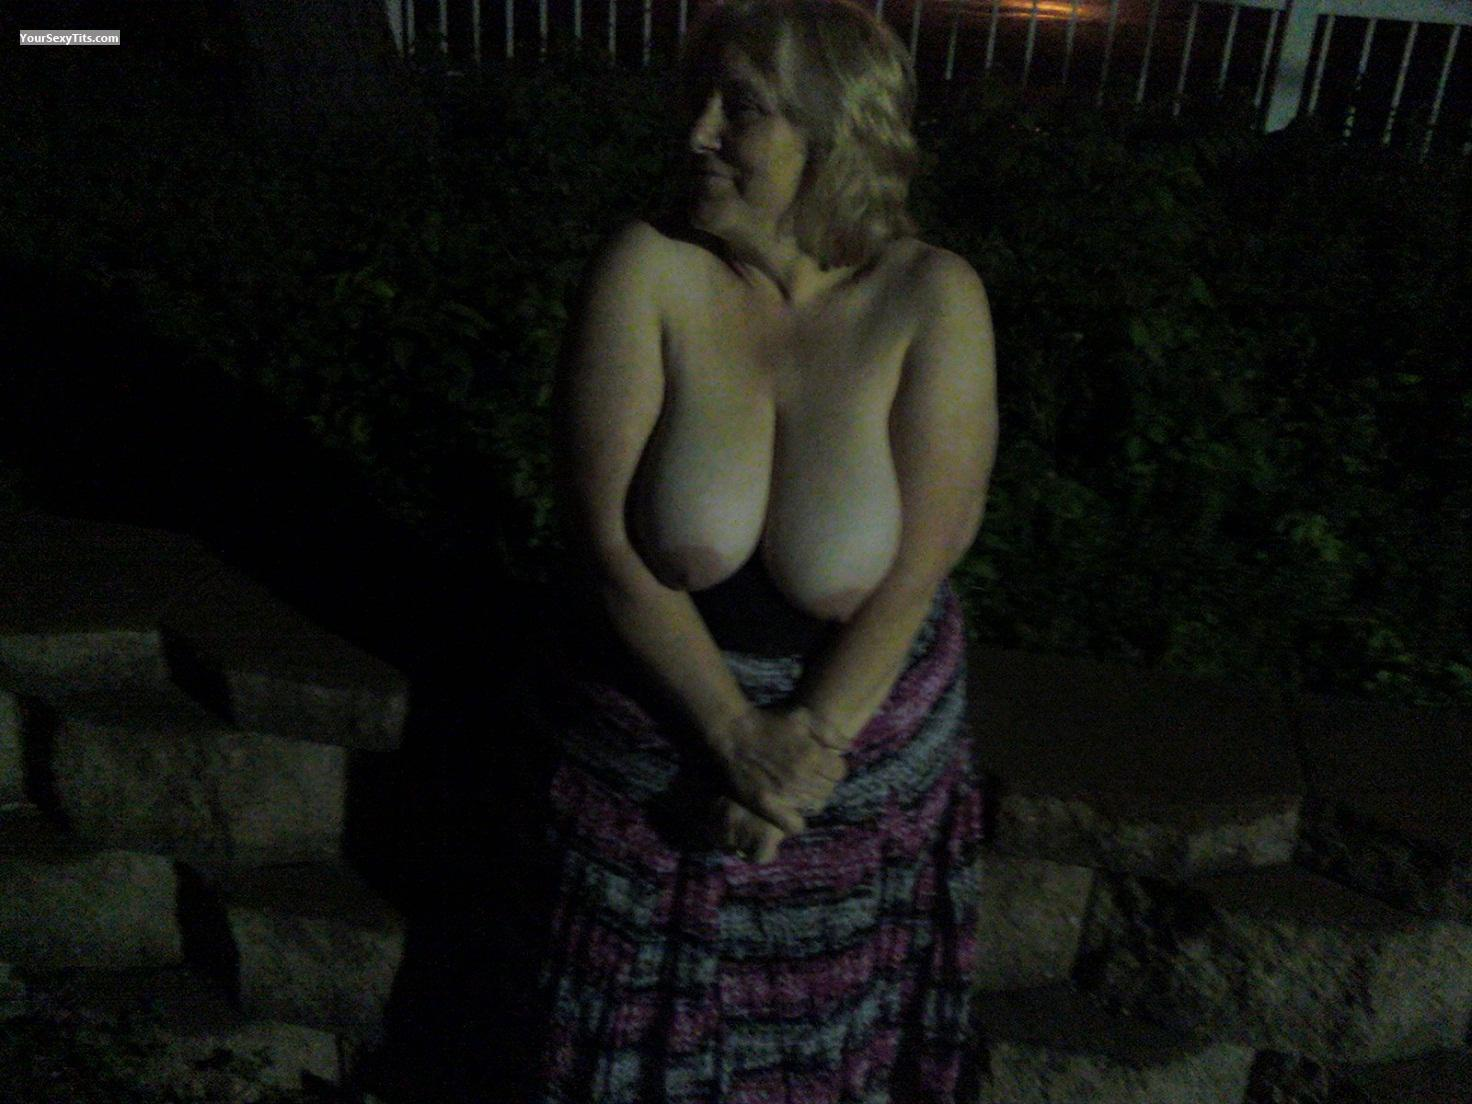 Tit Flash: Wife's Very Big Tits - Pablo's from United States